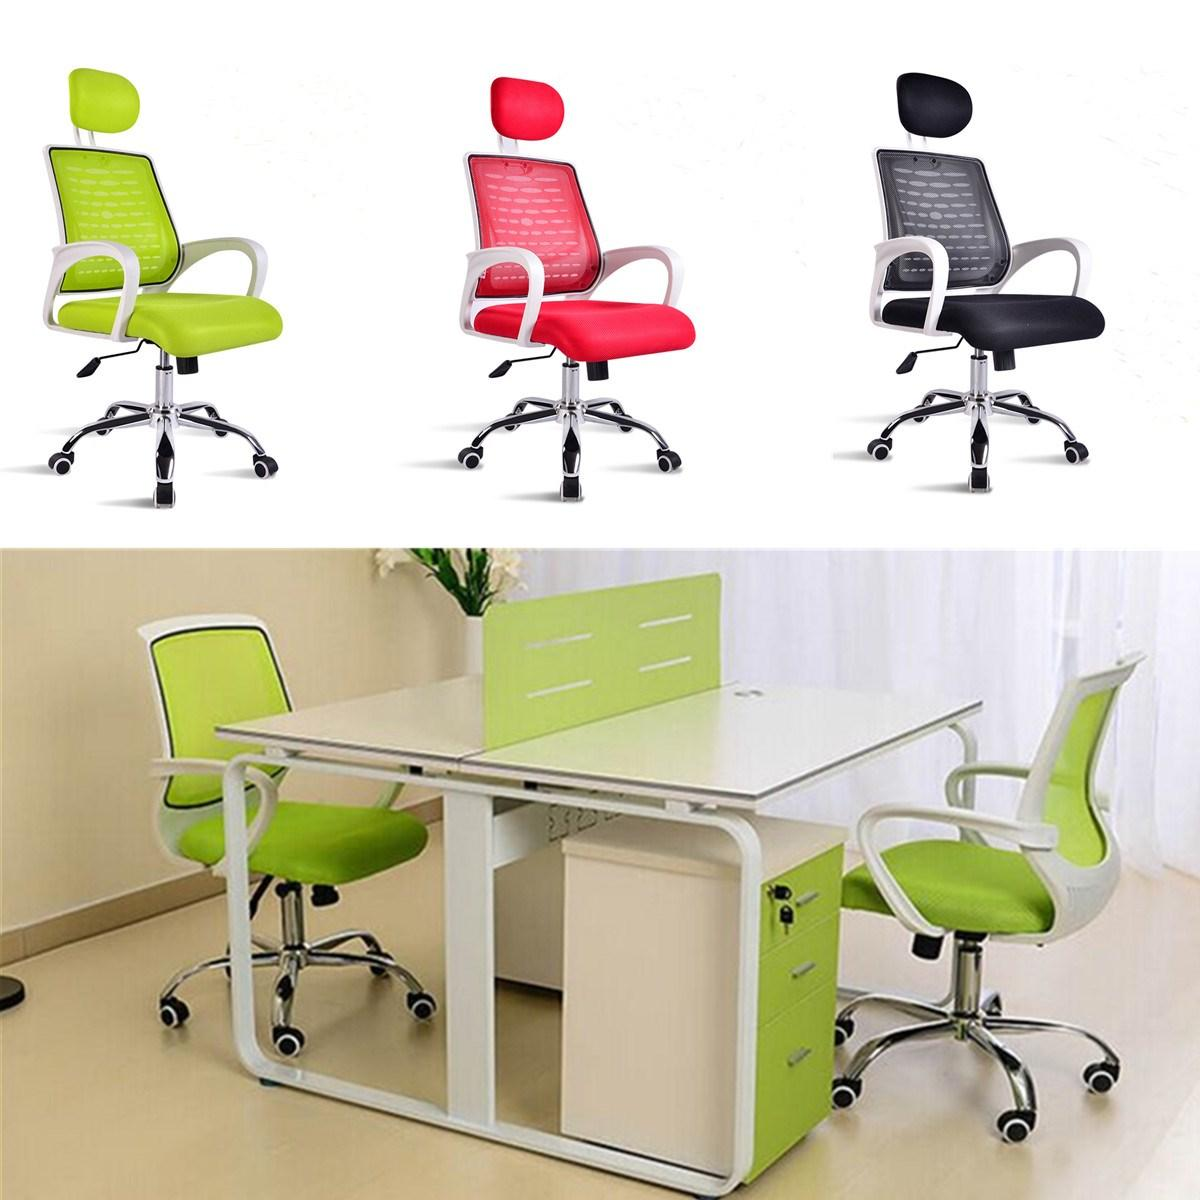 2018 Adjustable Medium Posture Office Chair With Mesh Fabric Pads Ship  Computer Gaming Chair 360 Free Rotating Chairs From Lailaihangdao, $552.93  | Dhgate.